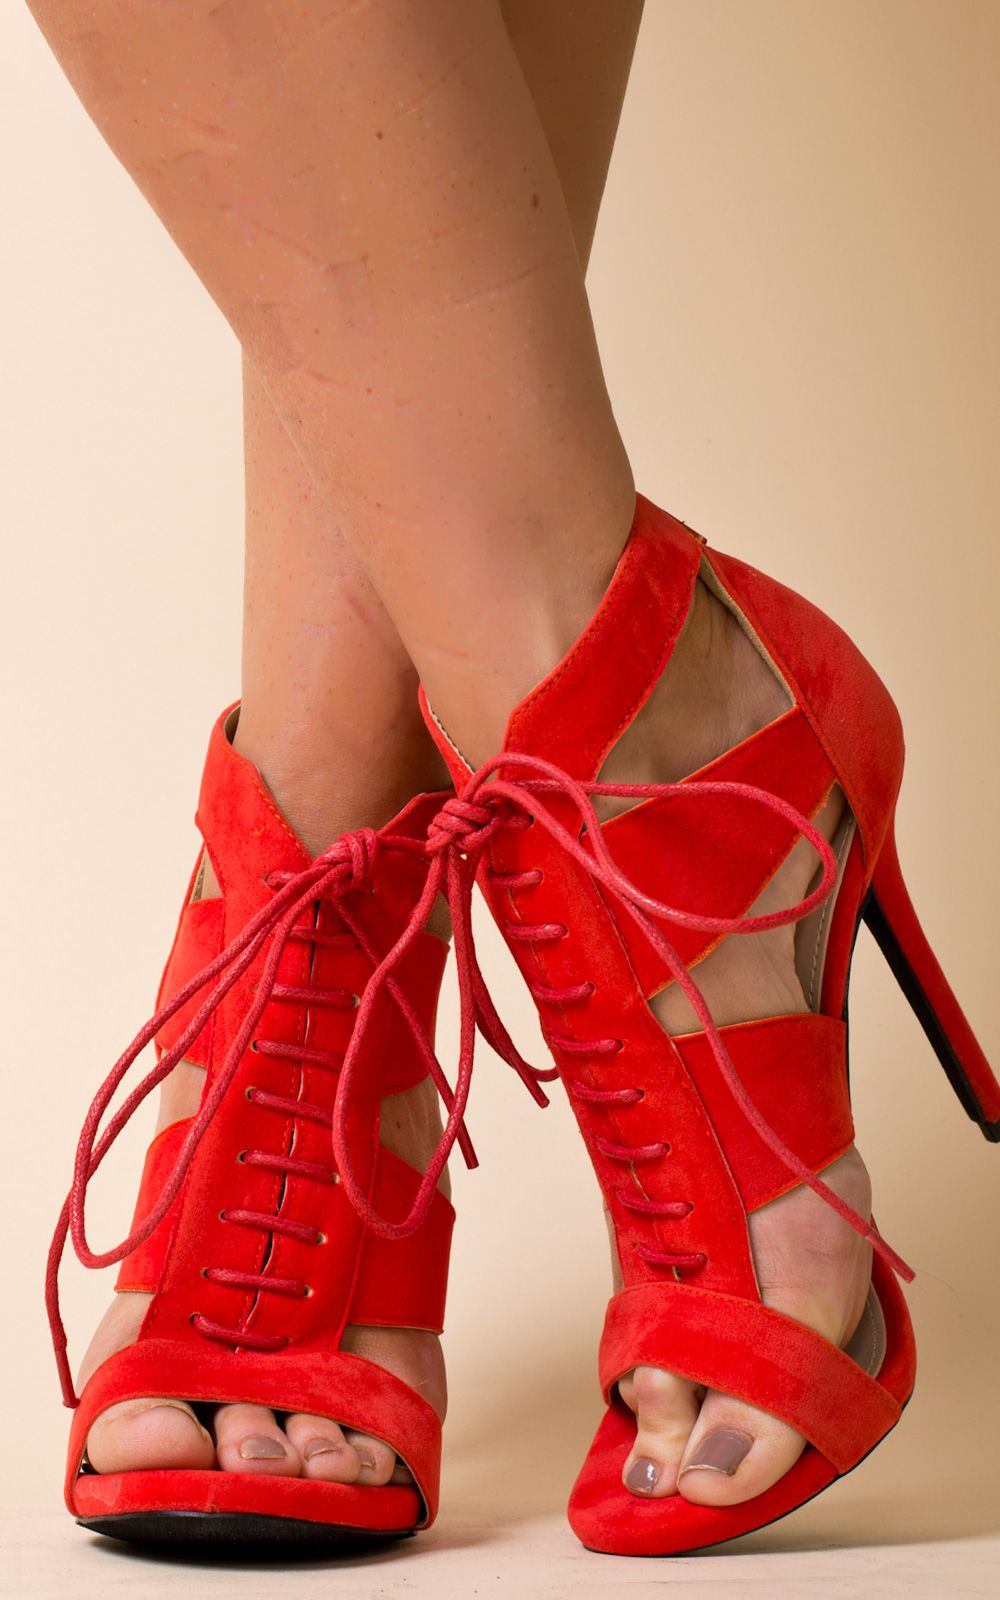 How to peep red wear toe heels pictures